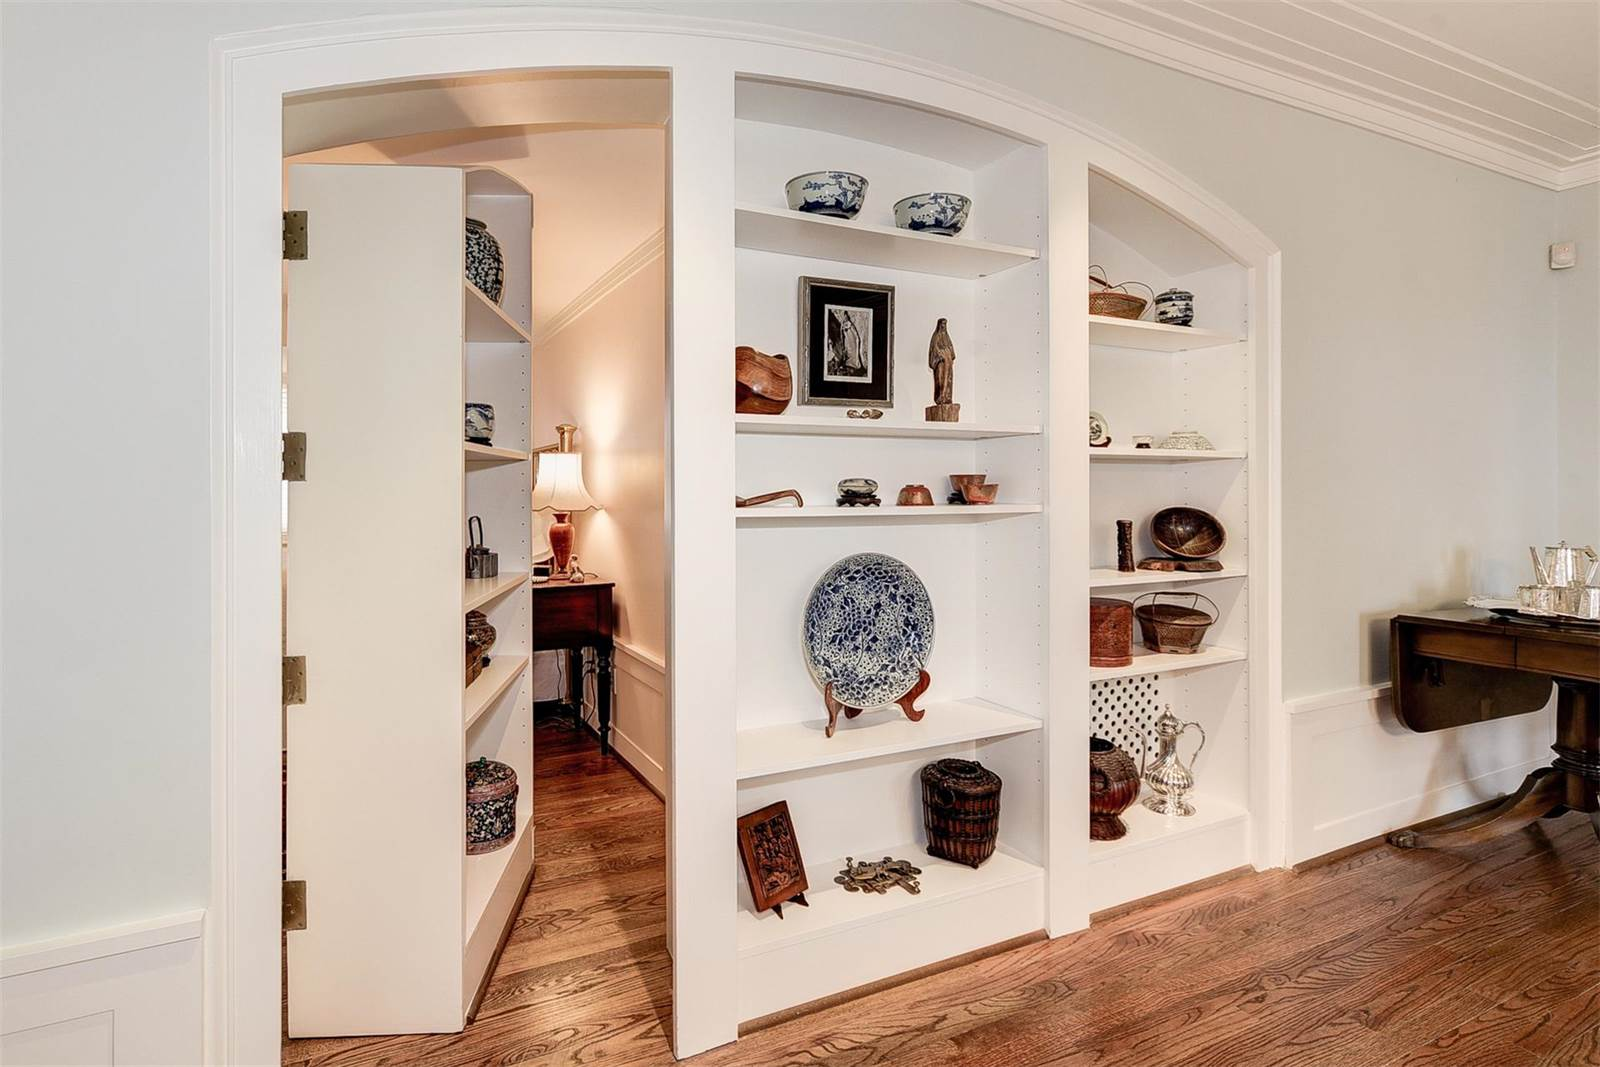 A private room hidden behind a display cabinet is just one of the alluring features of the historic Hornblower House in Washington, DC.